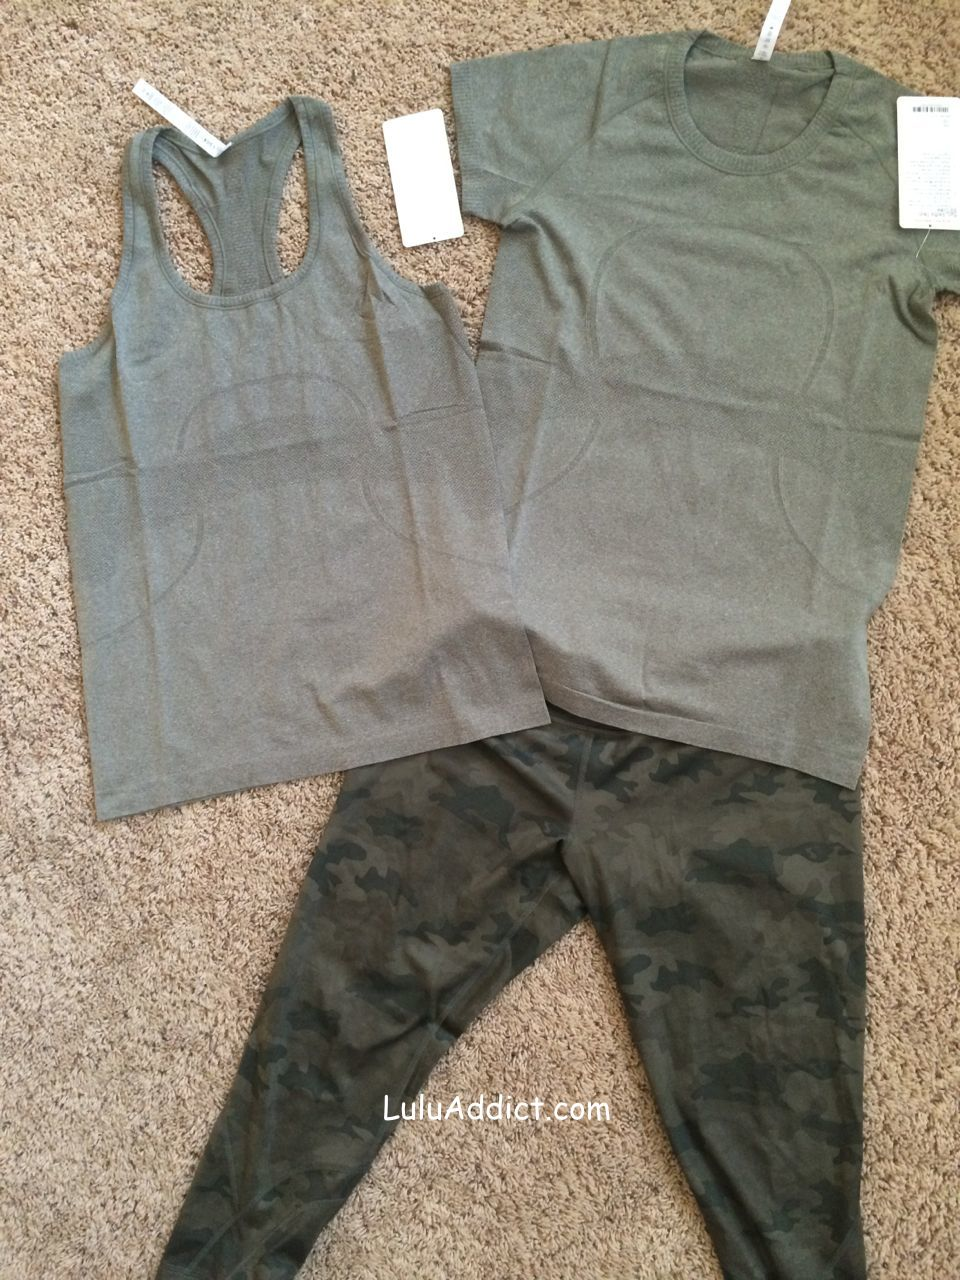 lululemon fatigue swiftly camo inspire crops